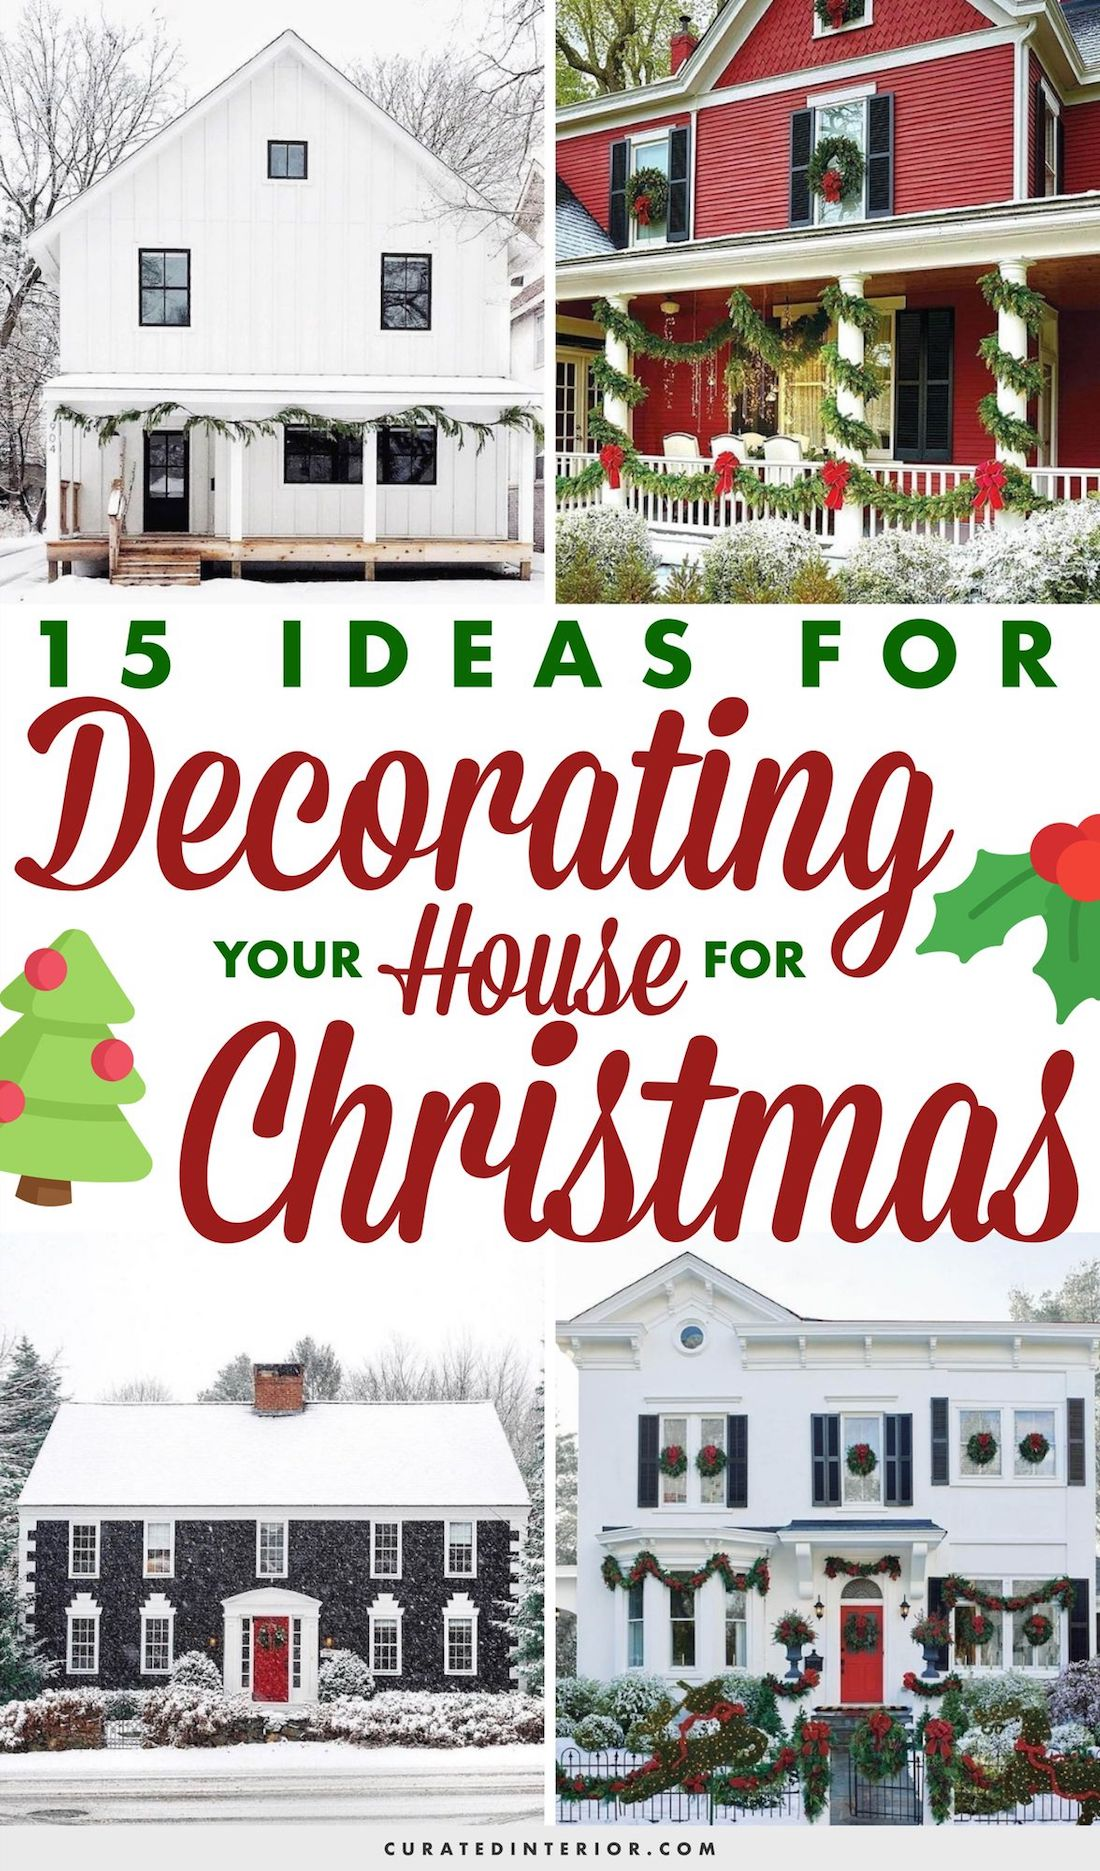 15 Ideas for Decorating Your House for Christmas #ChristmasDecor